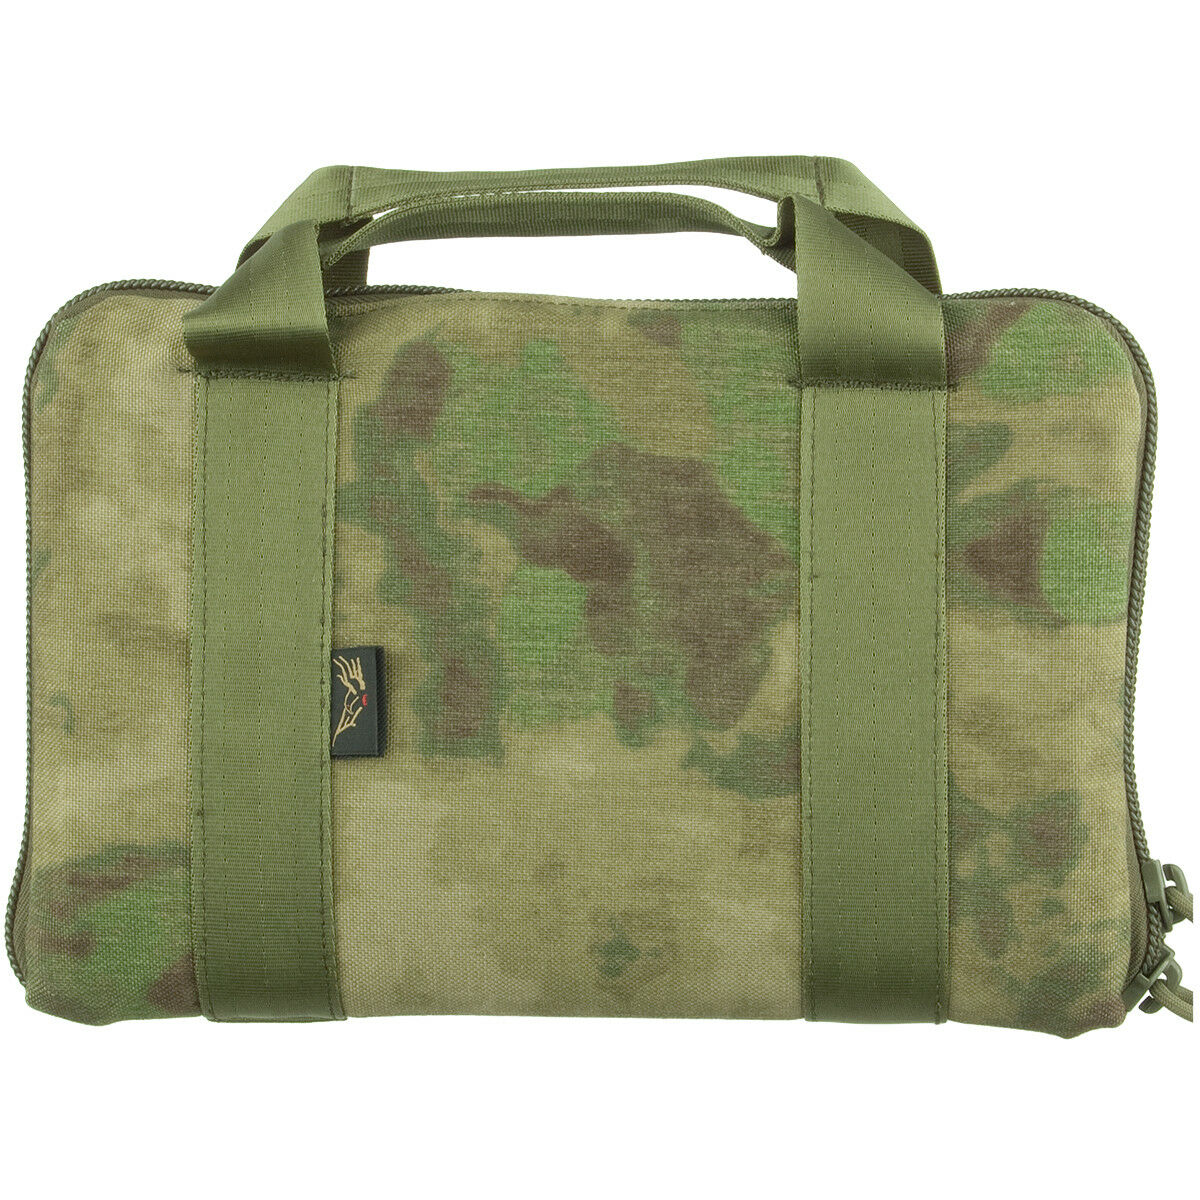 Flyye Pistole Carry Bag Militär Armee Waffe Lagerung Beutel A-TACS A-TACS A-TACS FG Camouflage 58bf07